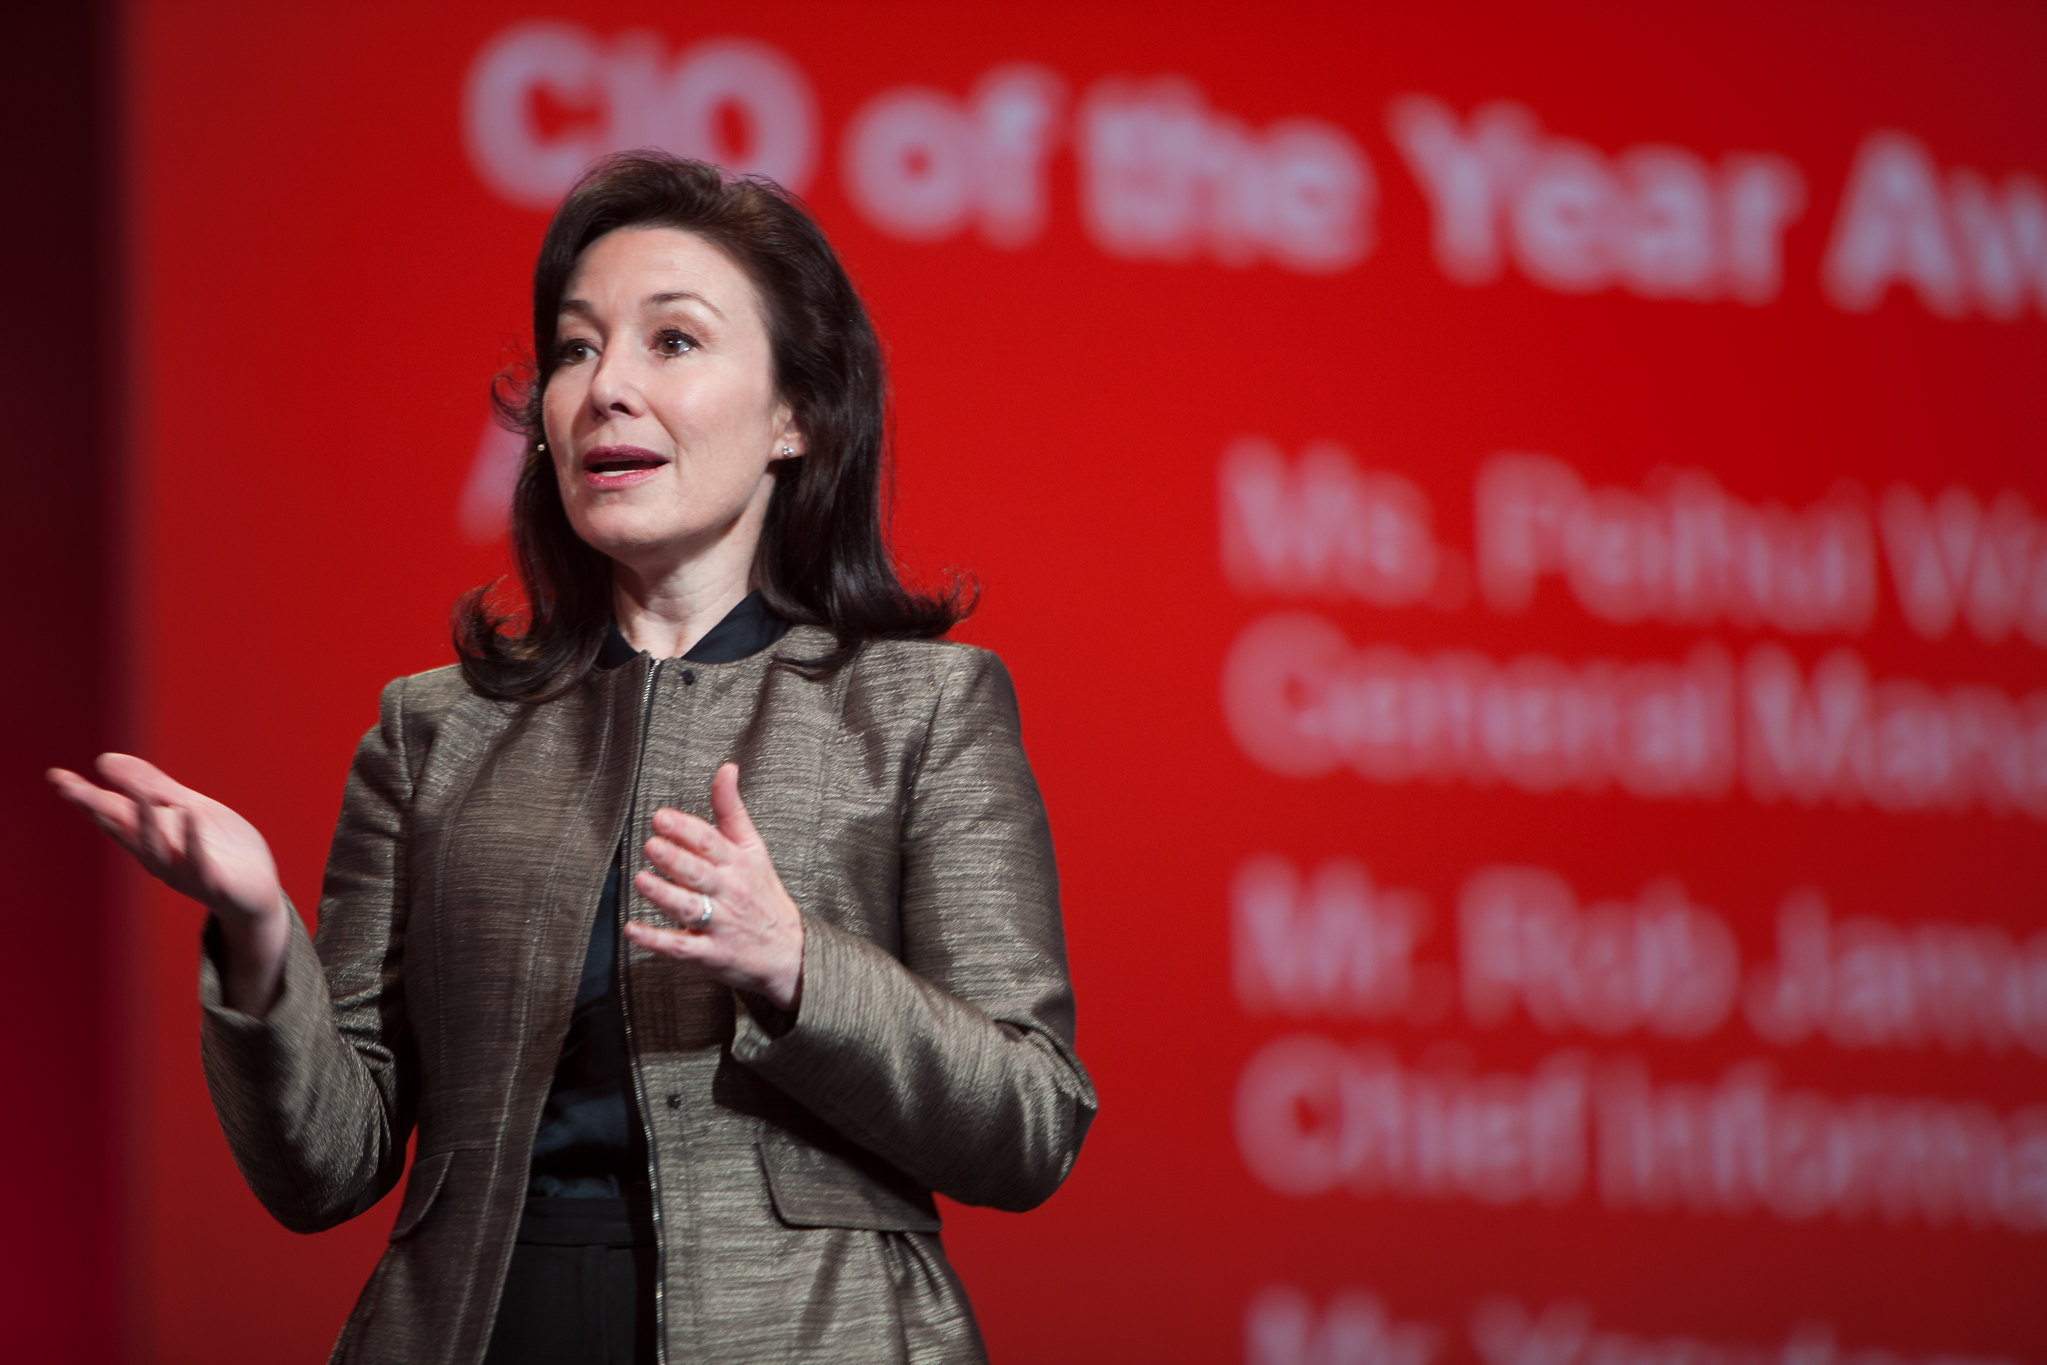 Oracle's stock falls on cloud investment plans despite solid earnings beat - SiliconANGLE